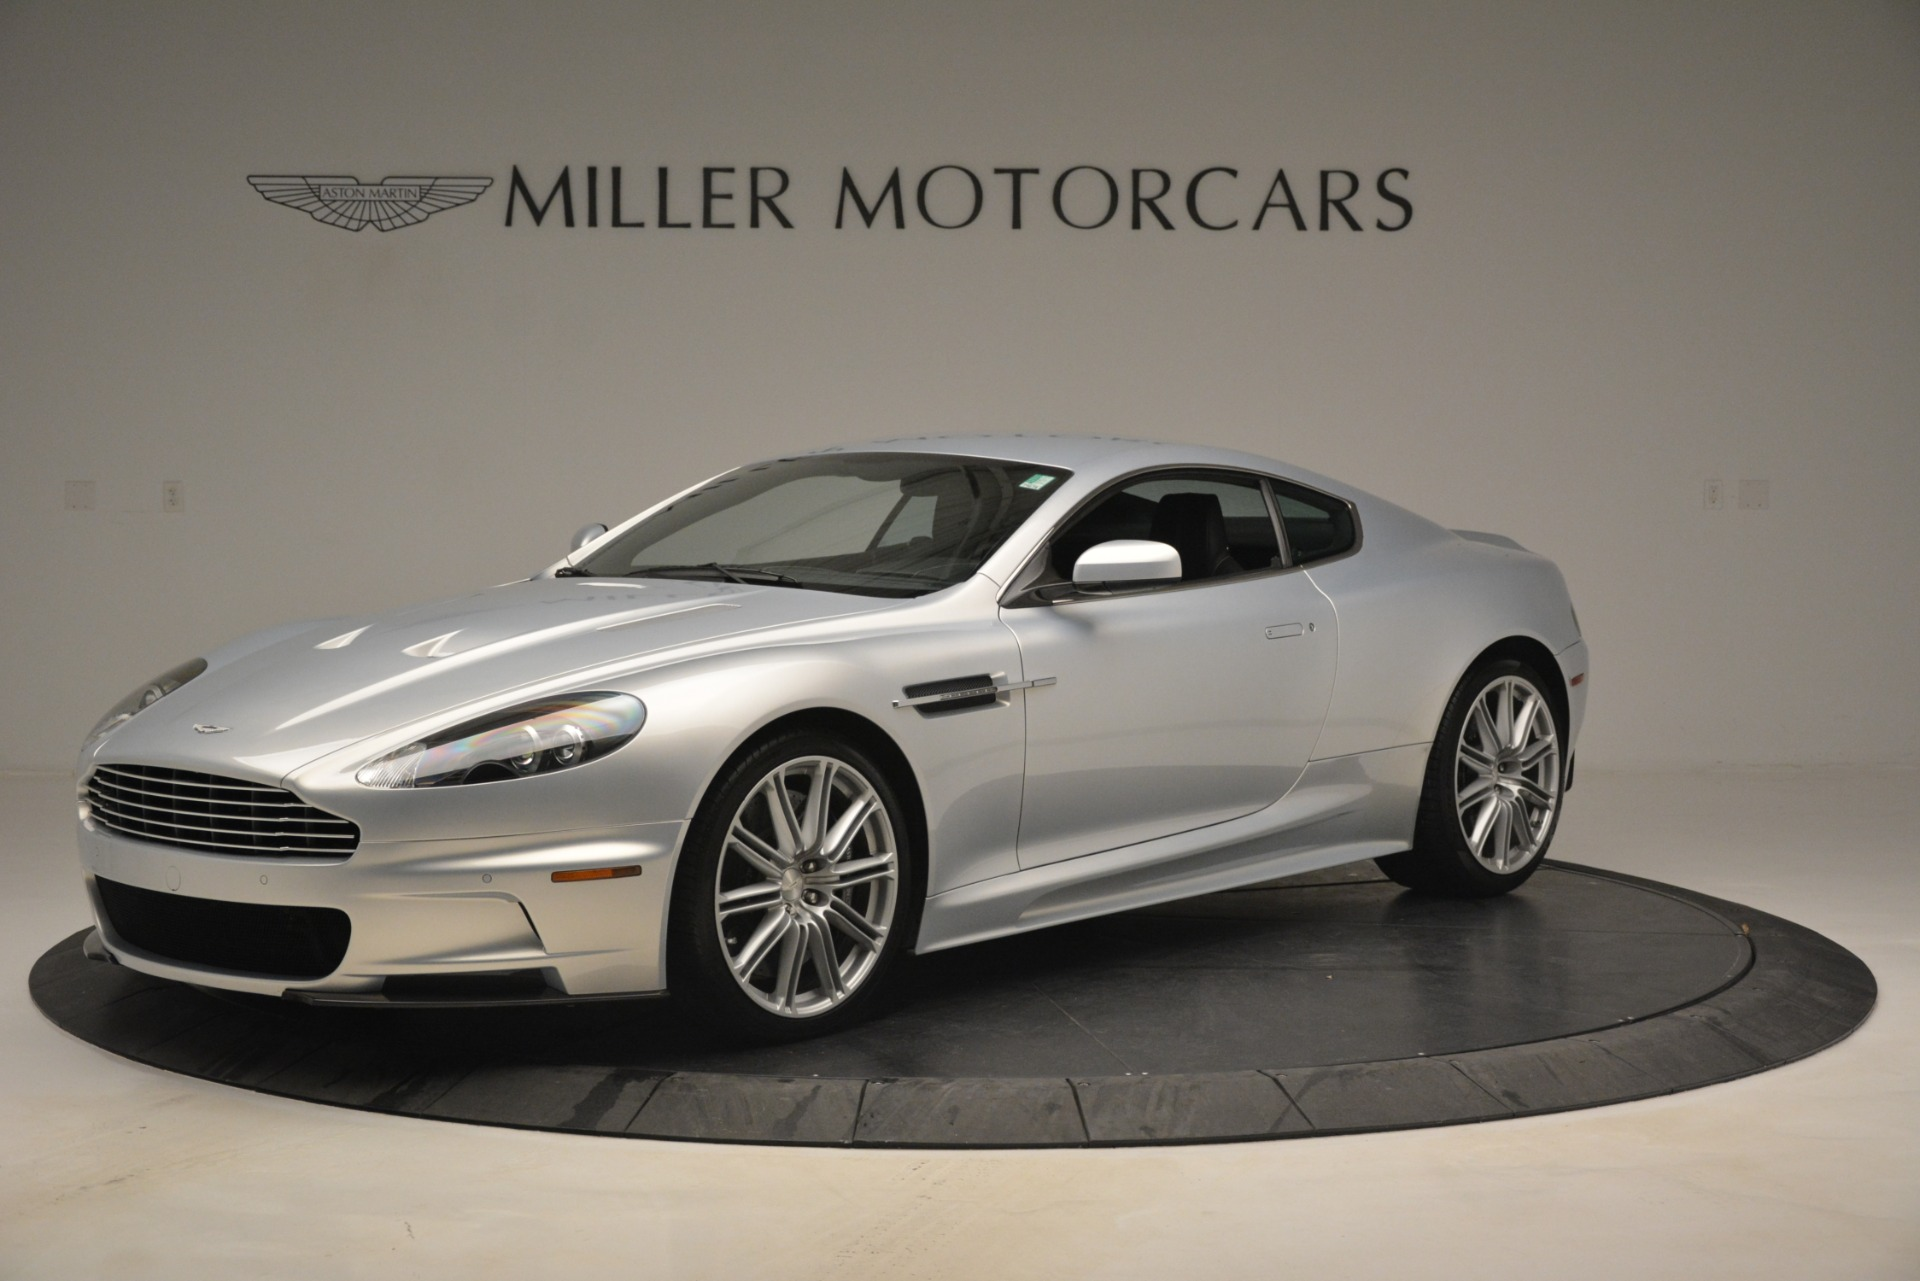 Used 2009 Aston Martin DBS Coupe for sale Sold at Bugatti of Greenwich in Greenwich CT 06830 1